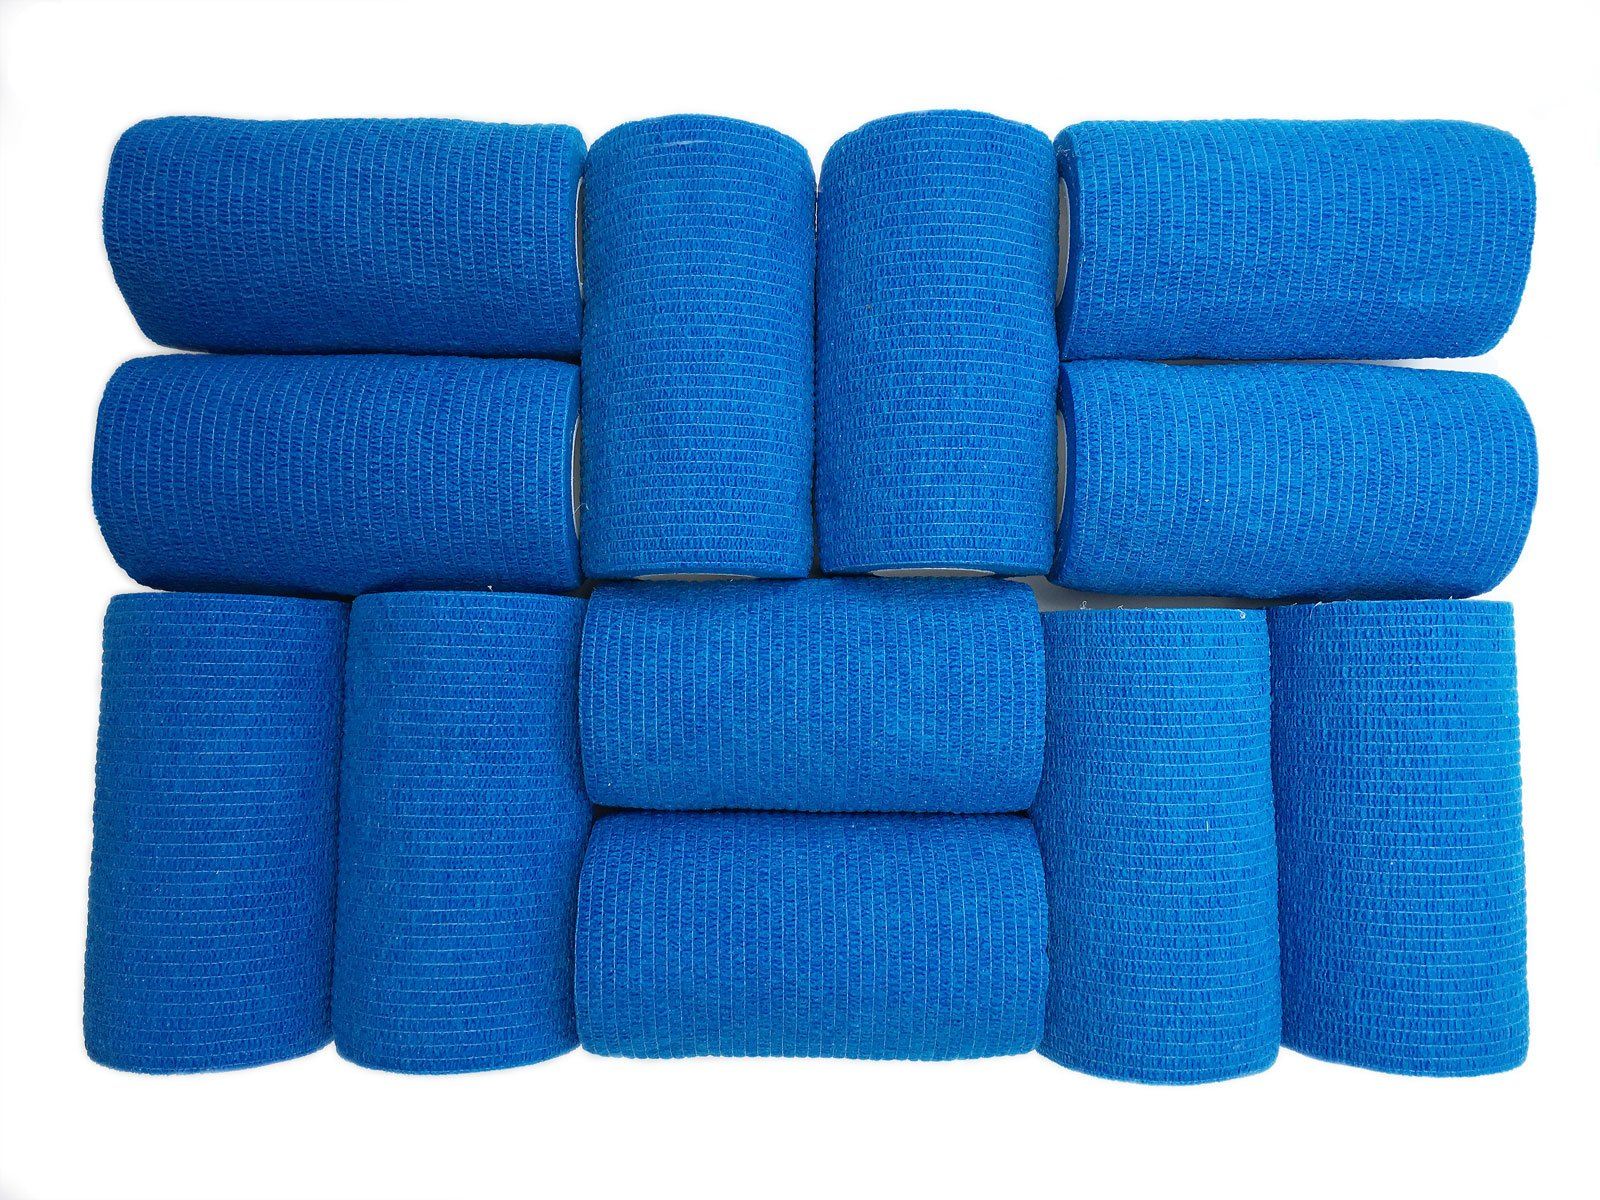 WildCow 4'' Blue Vet Wrap Tape Bulk, 12 Pack Cohesive Bandage Wrap, Self Adherent Grip Rolls